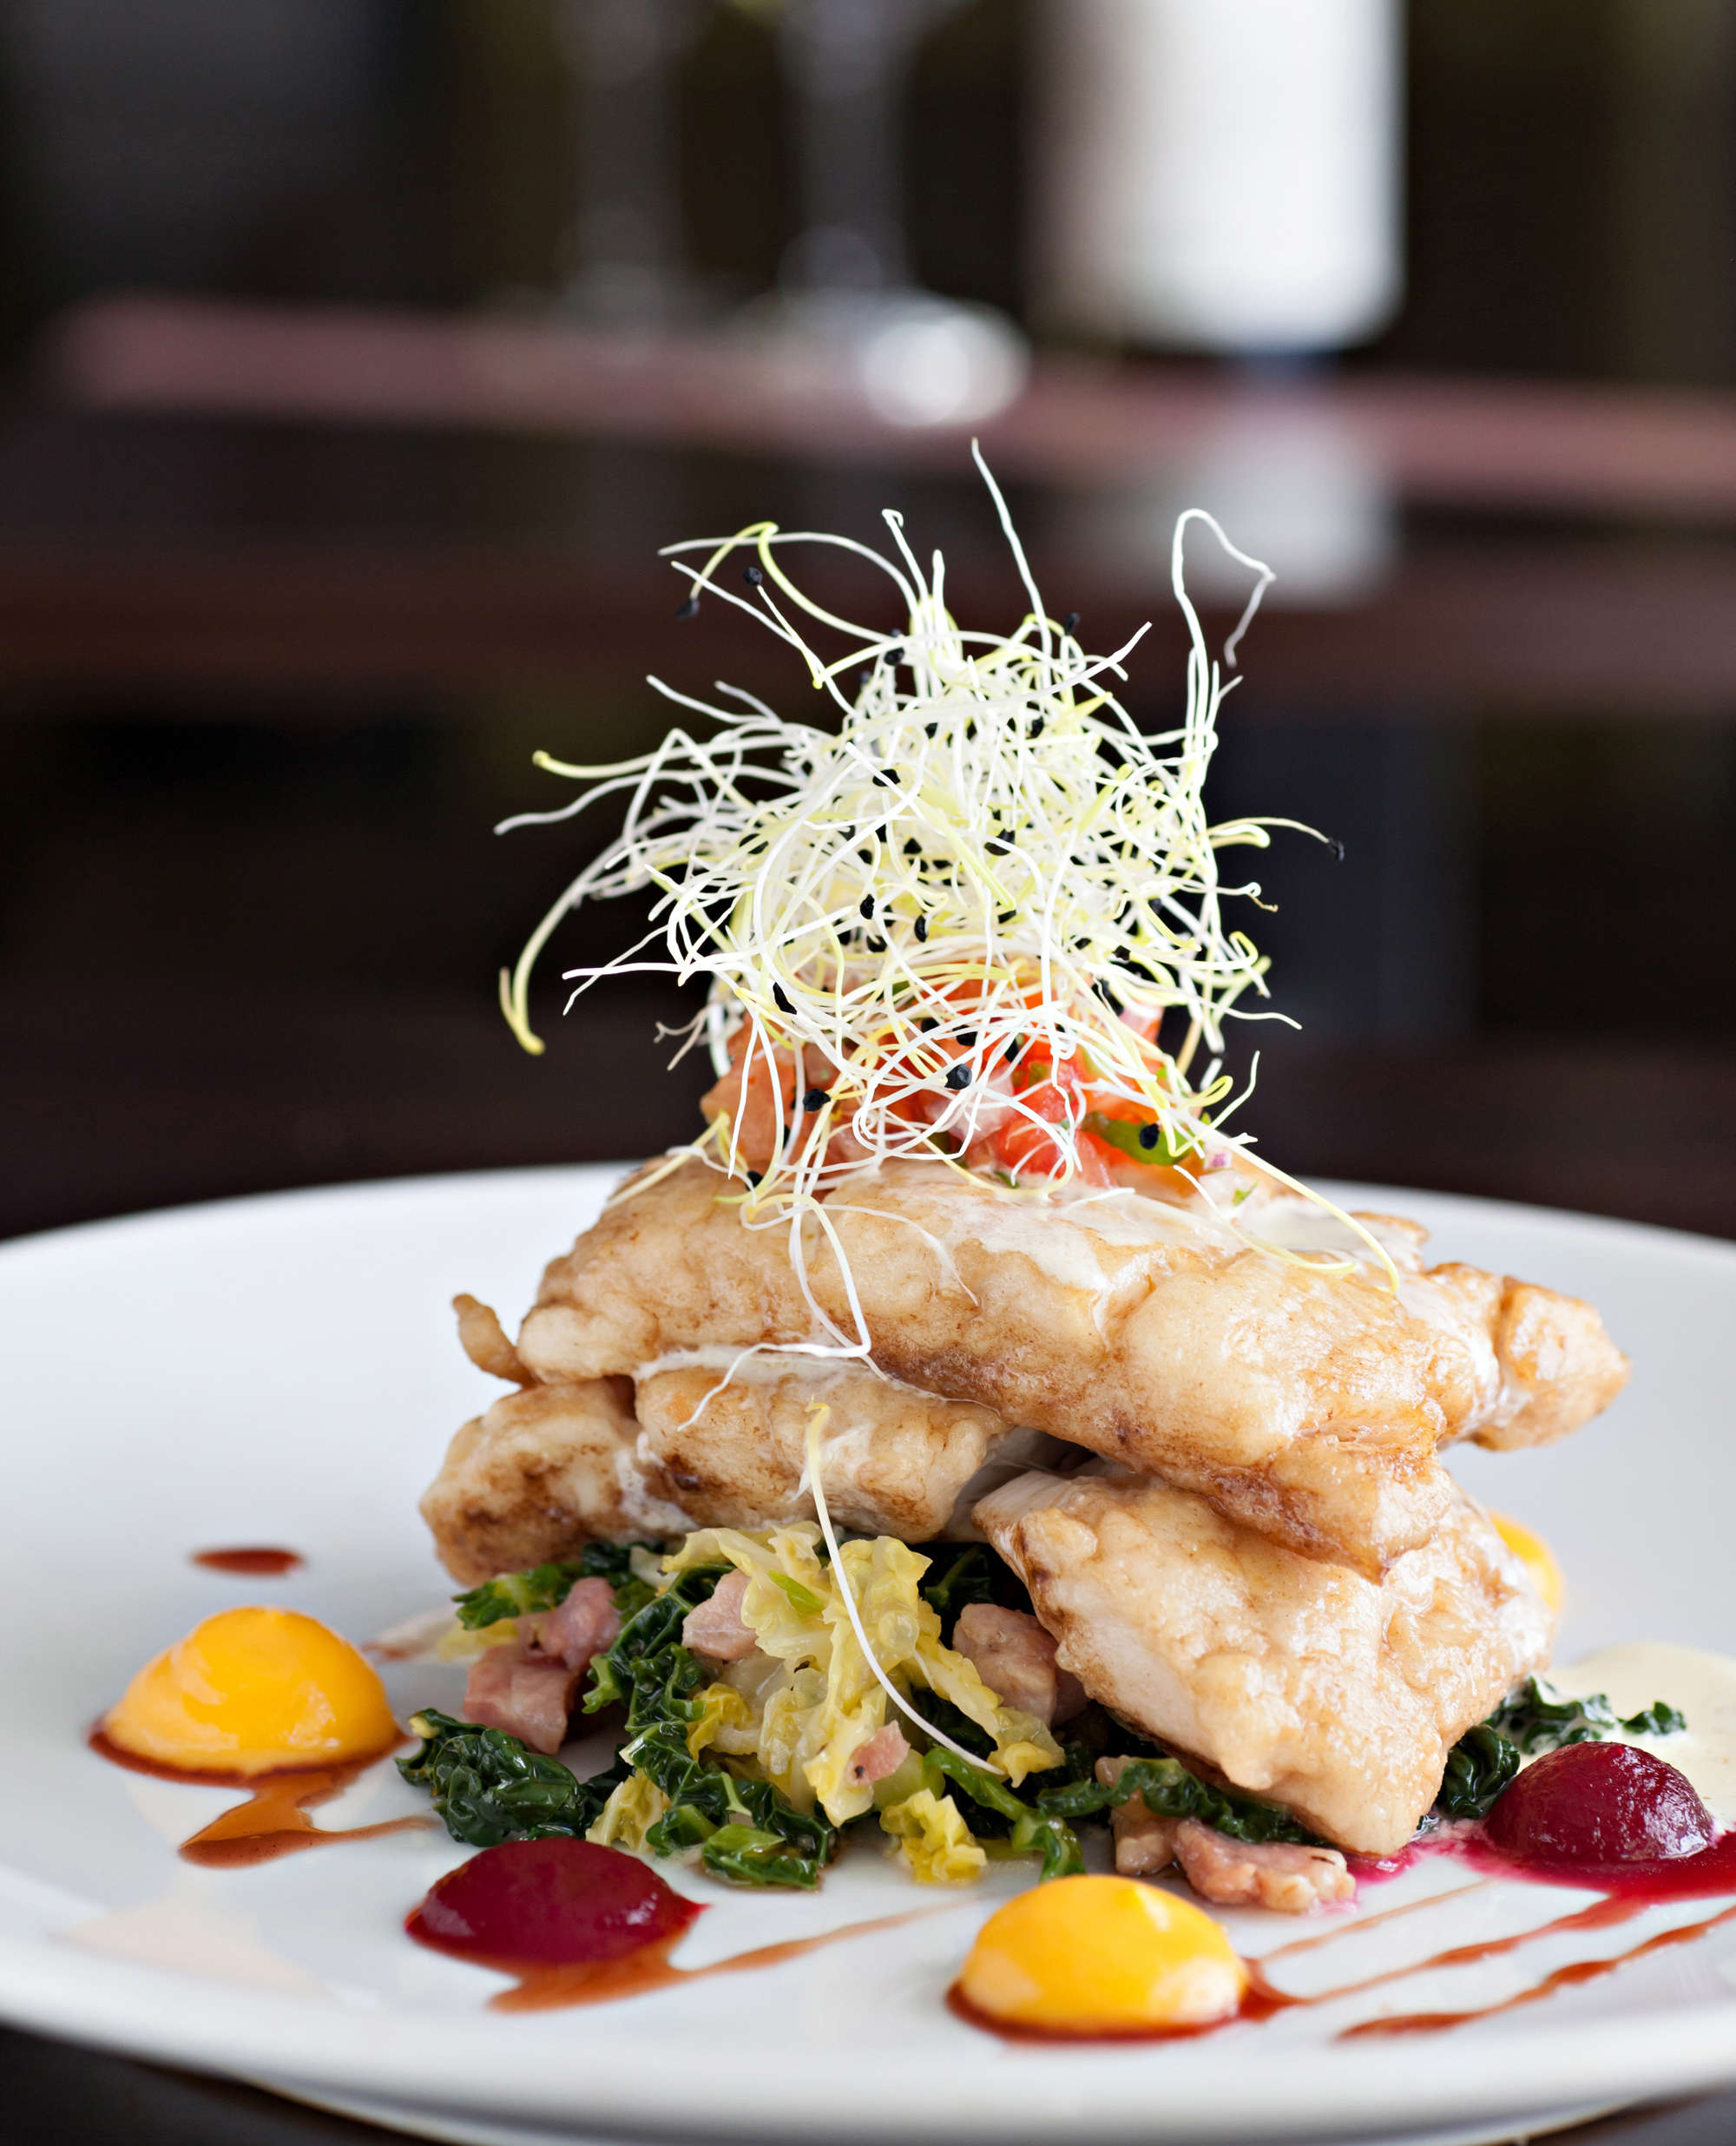 Roast Union Hall Hake, Truffled Savoy Cabbage with crispy lardons, Butternut Squash Puree, Beetroot & Orange Jam